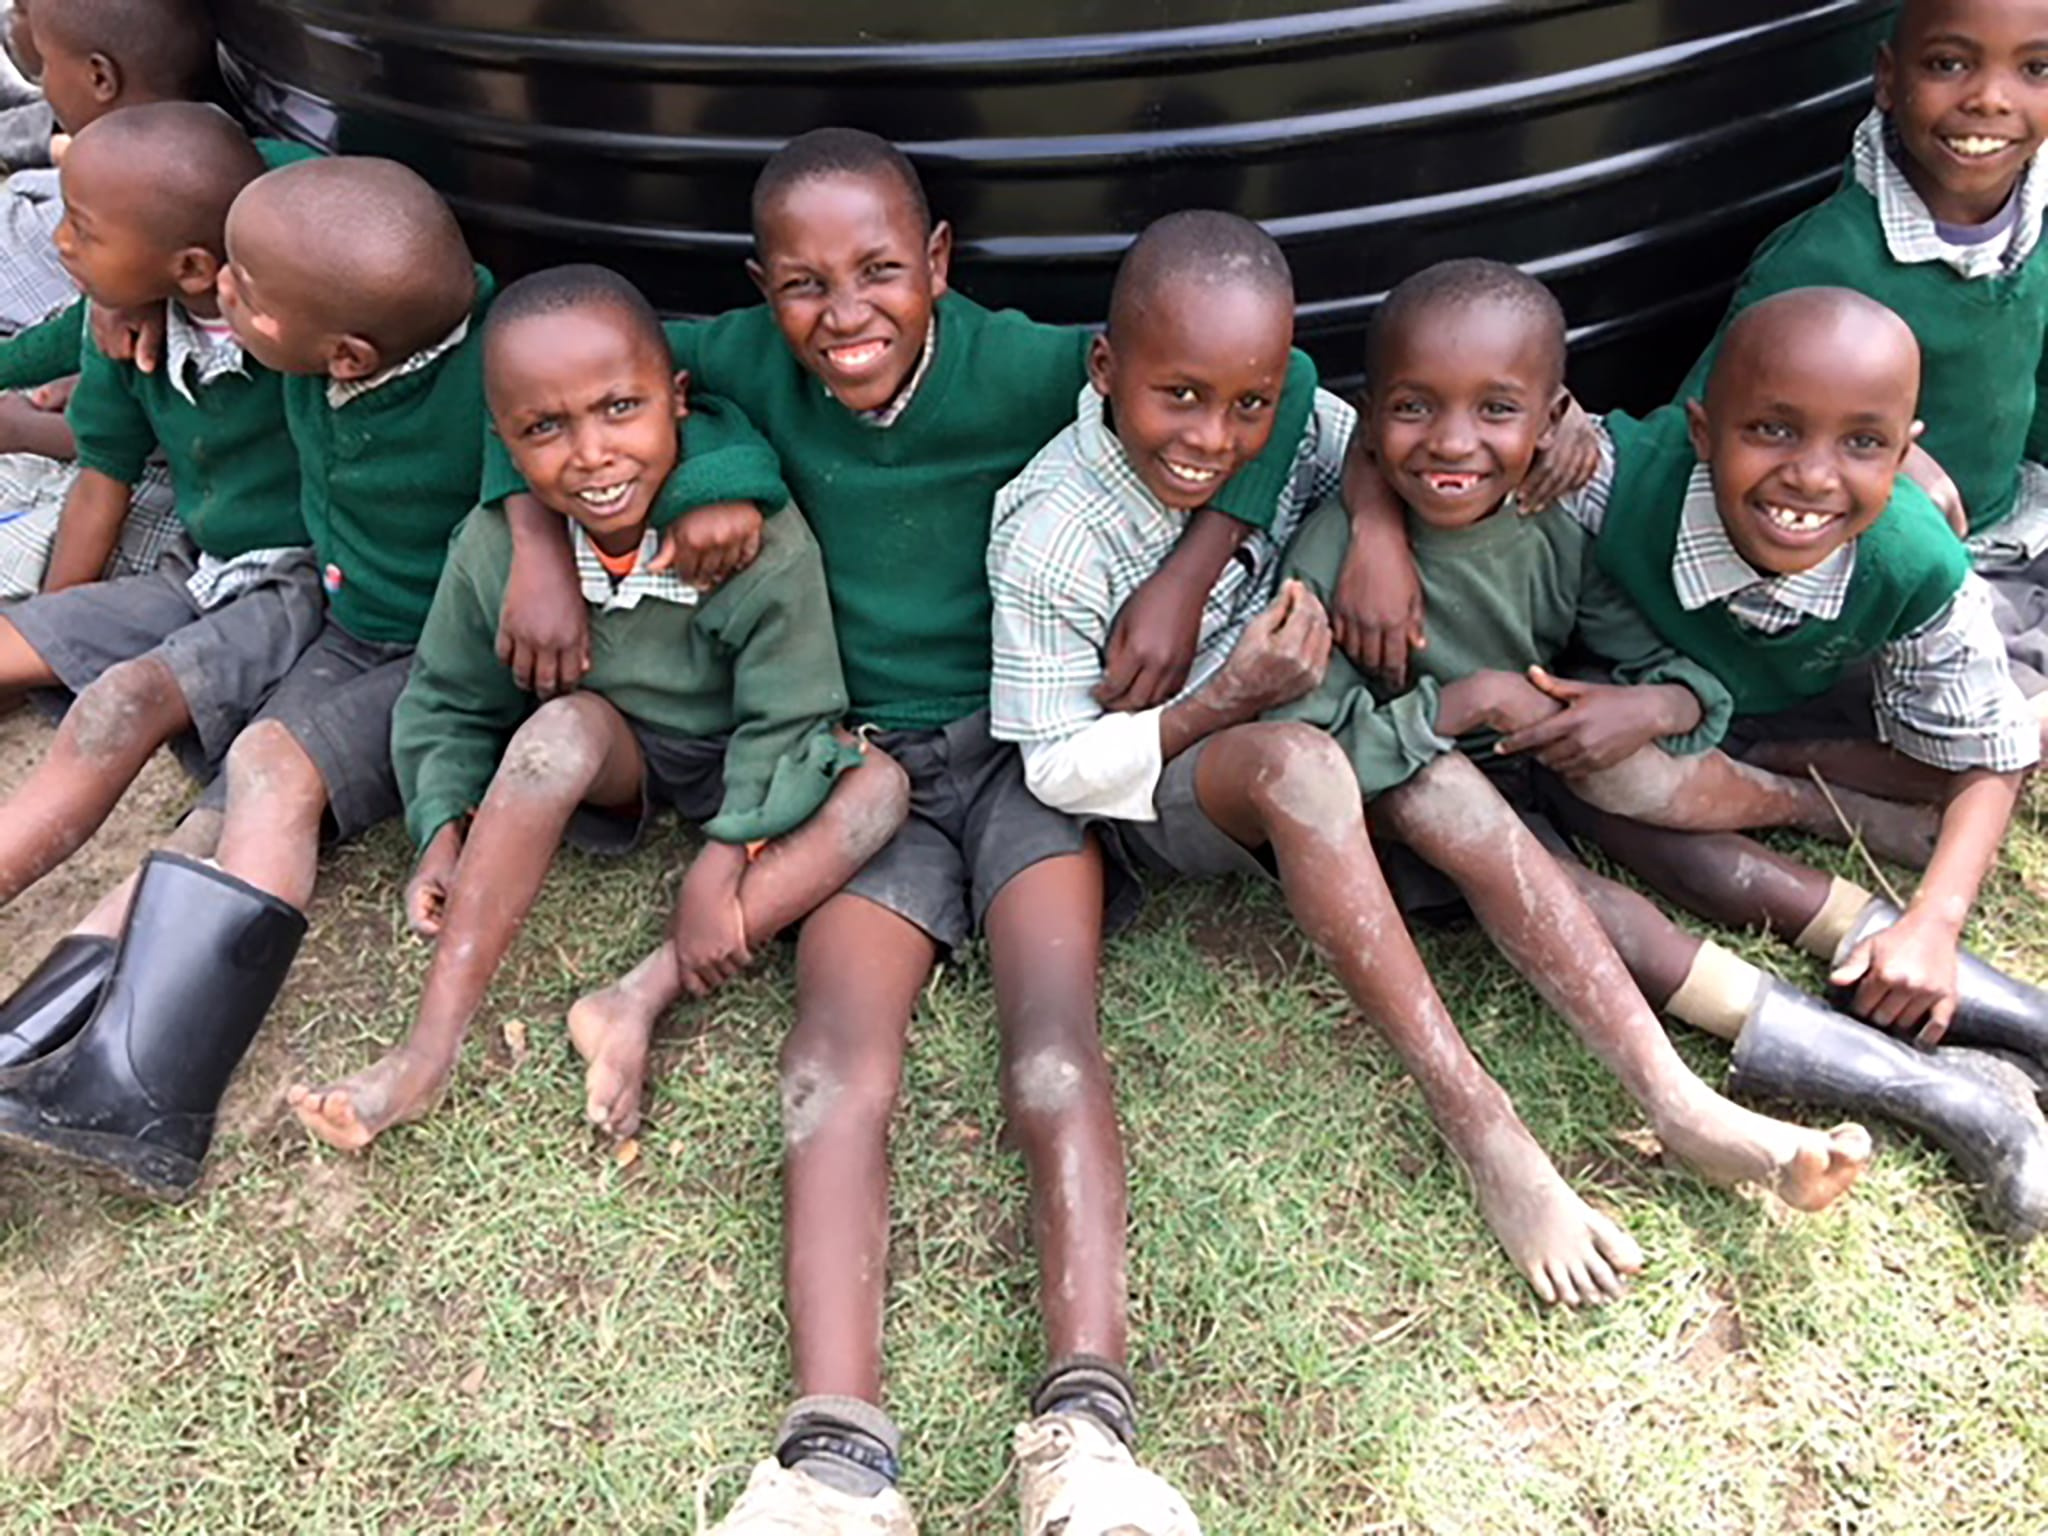 Students from CCM primary school in Nanyuki gather around the rainwater tank donated by Matanya's Hope